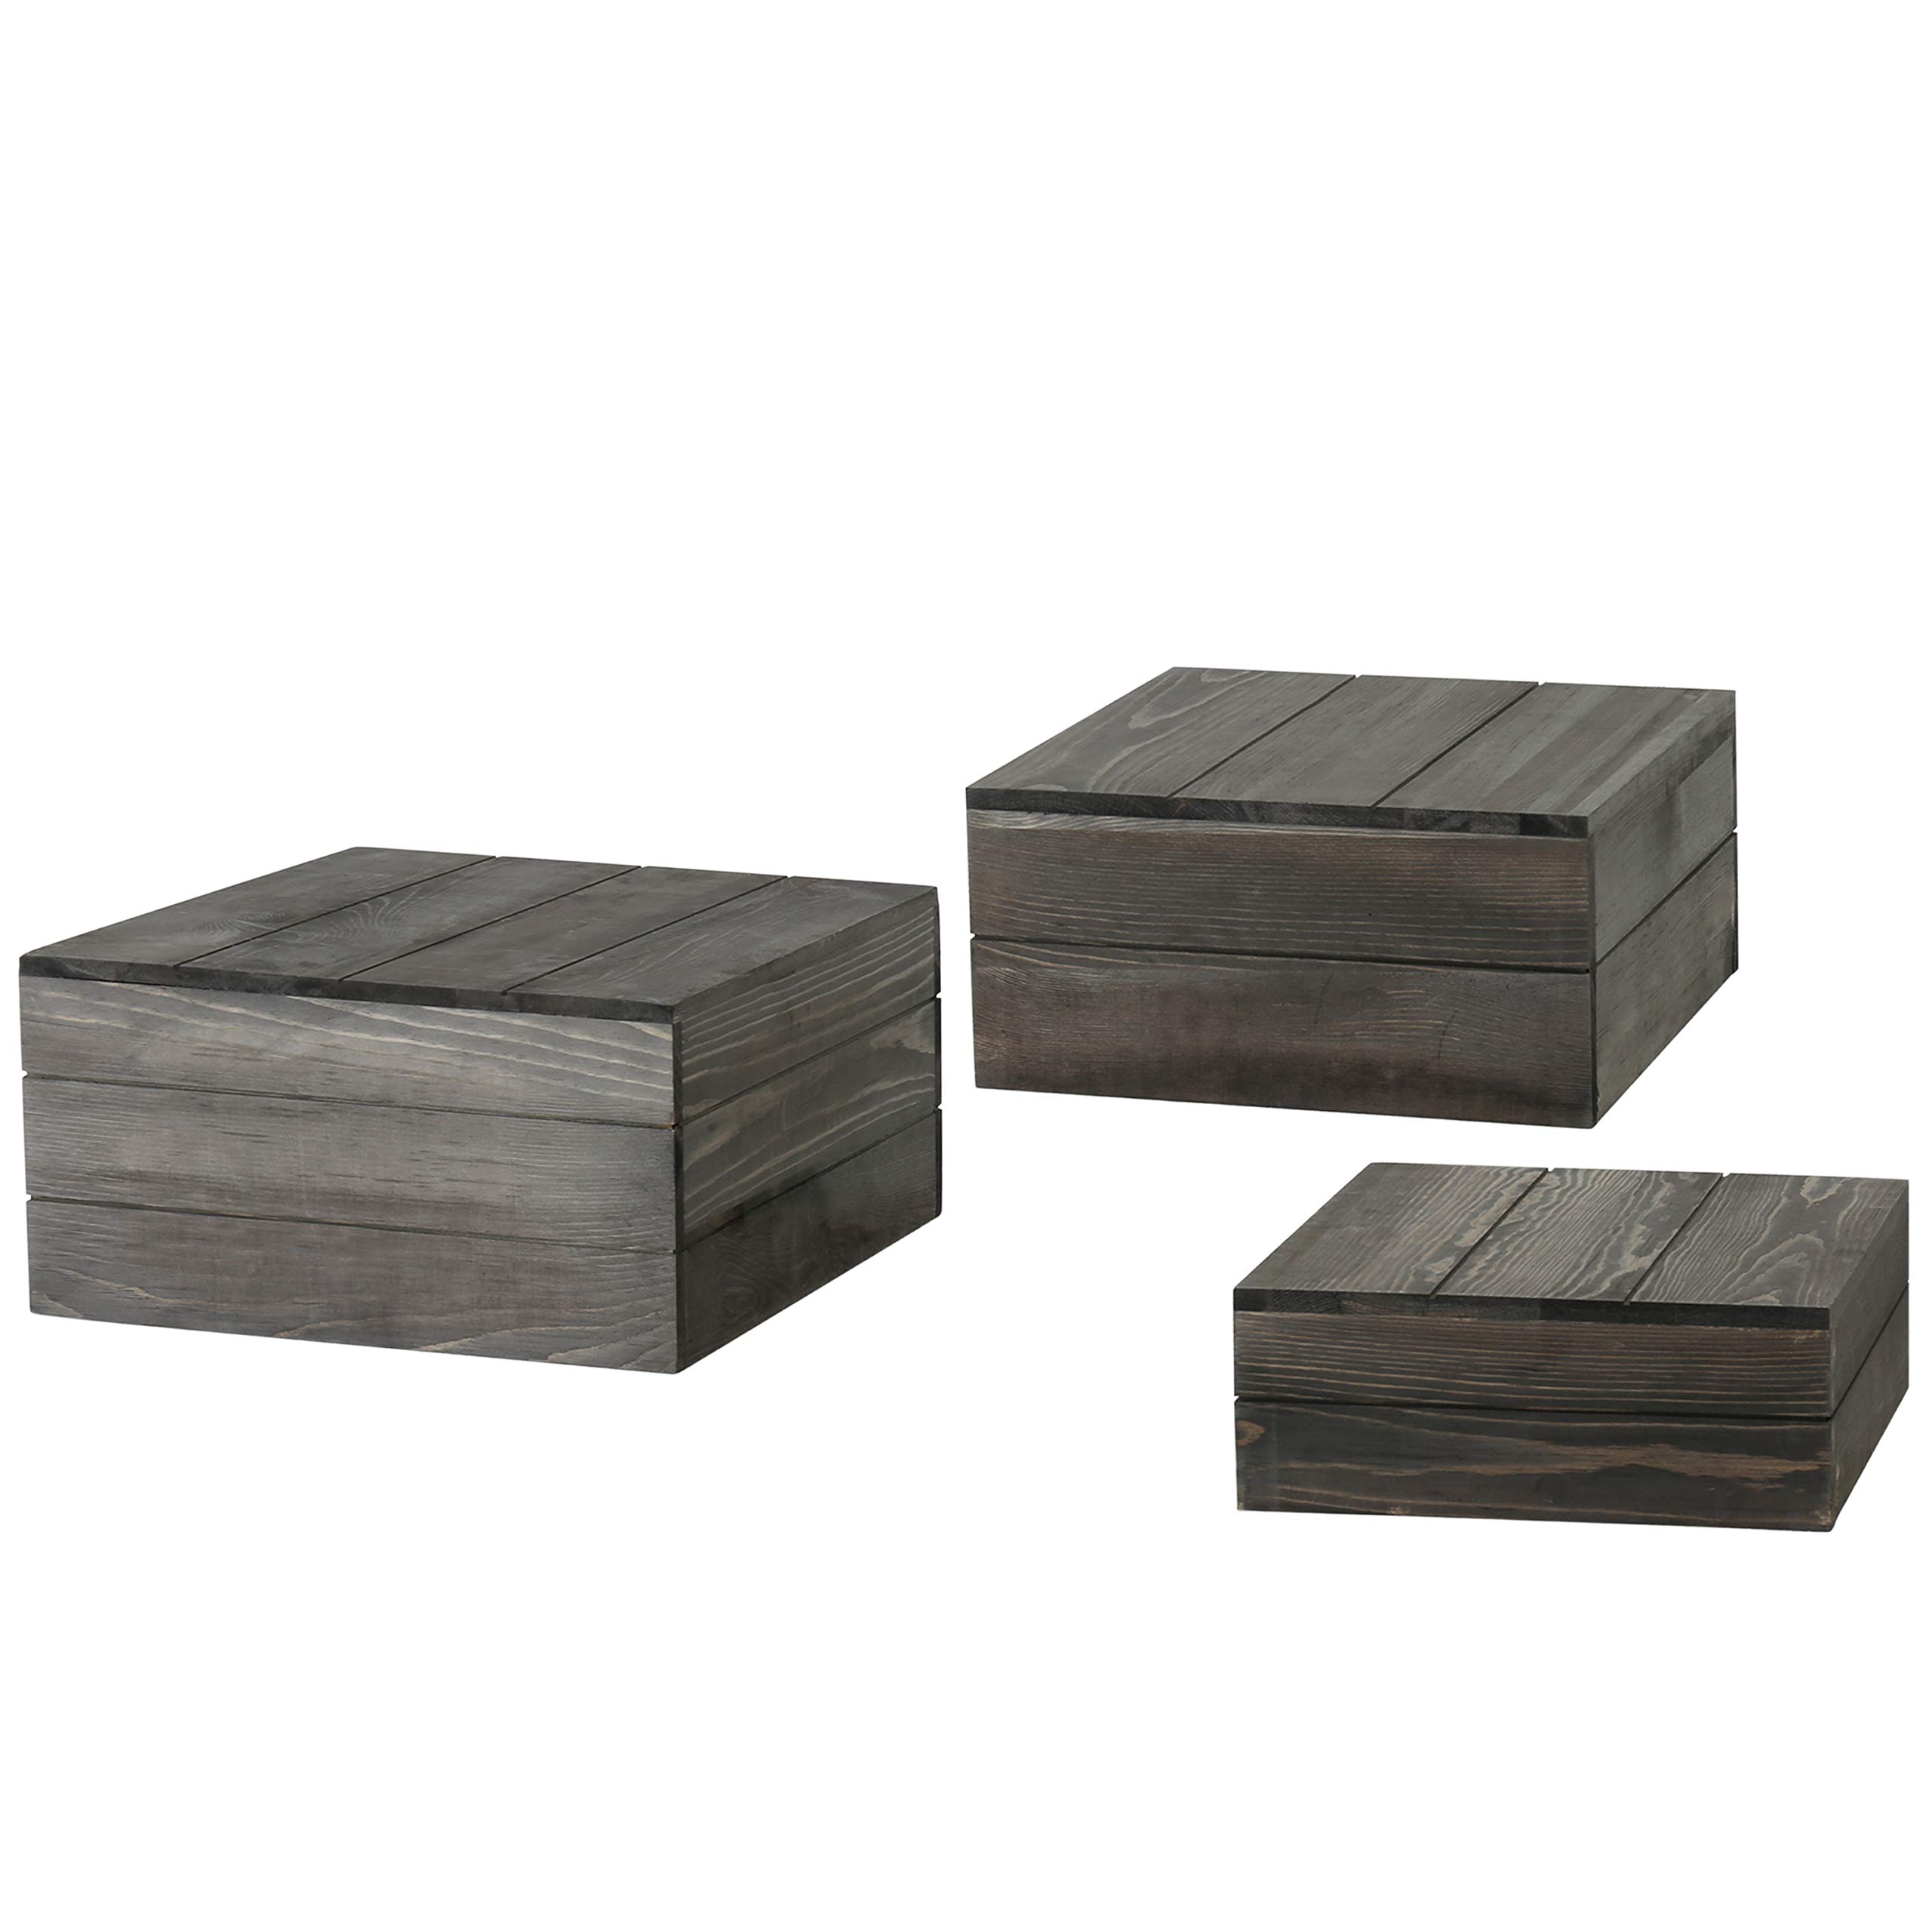 MyGift Rustic Gray Wood Crate Display Risers, Set of 3 by MyGift (Image #5)